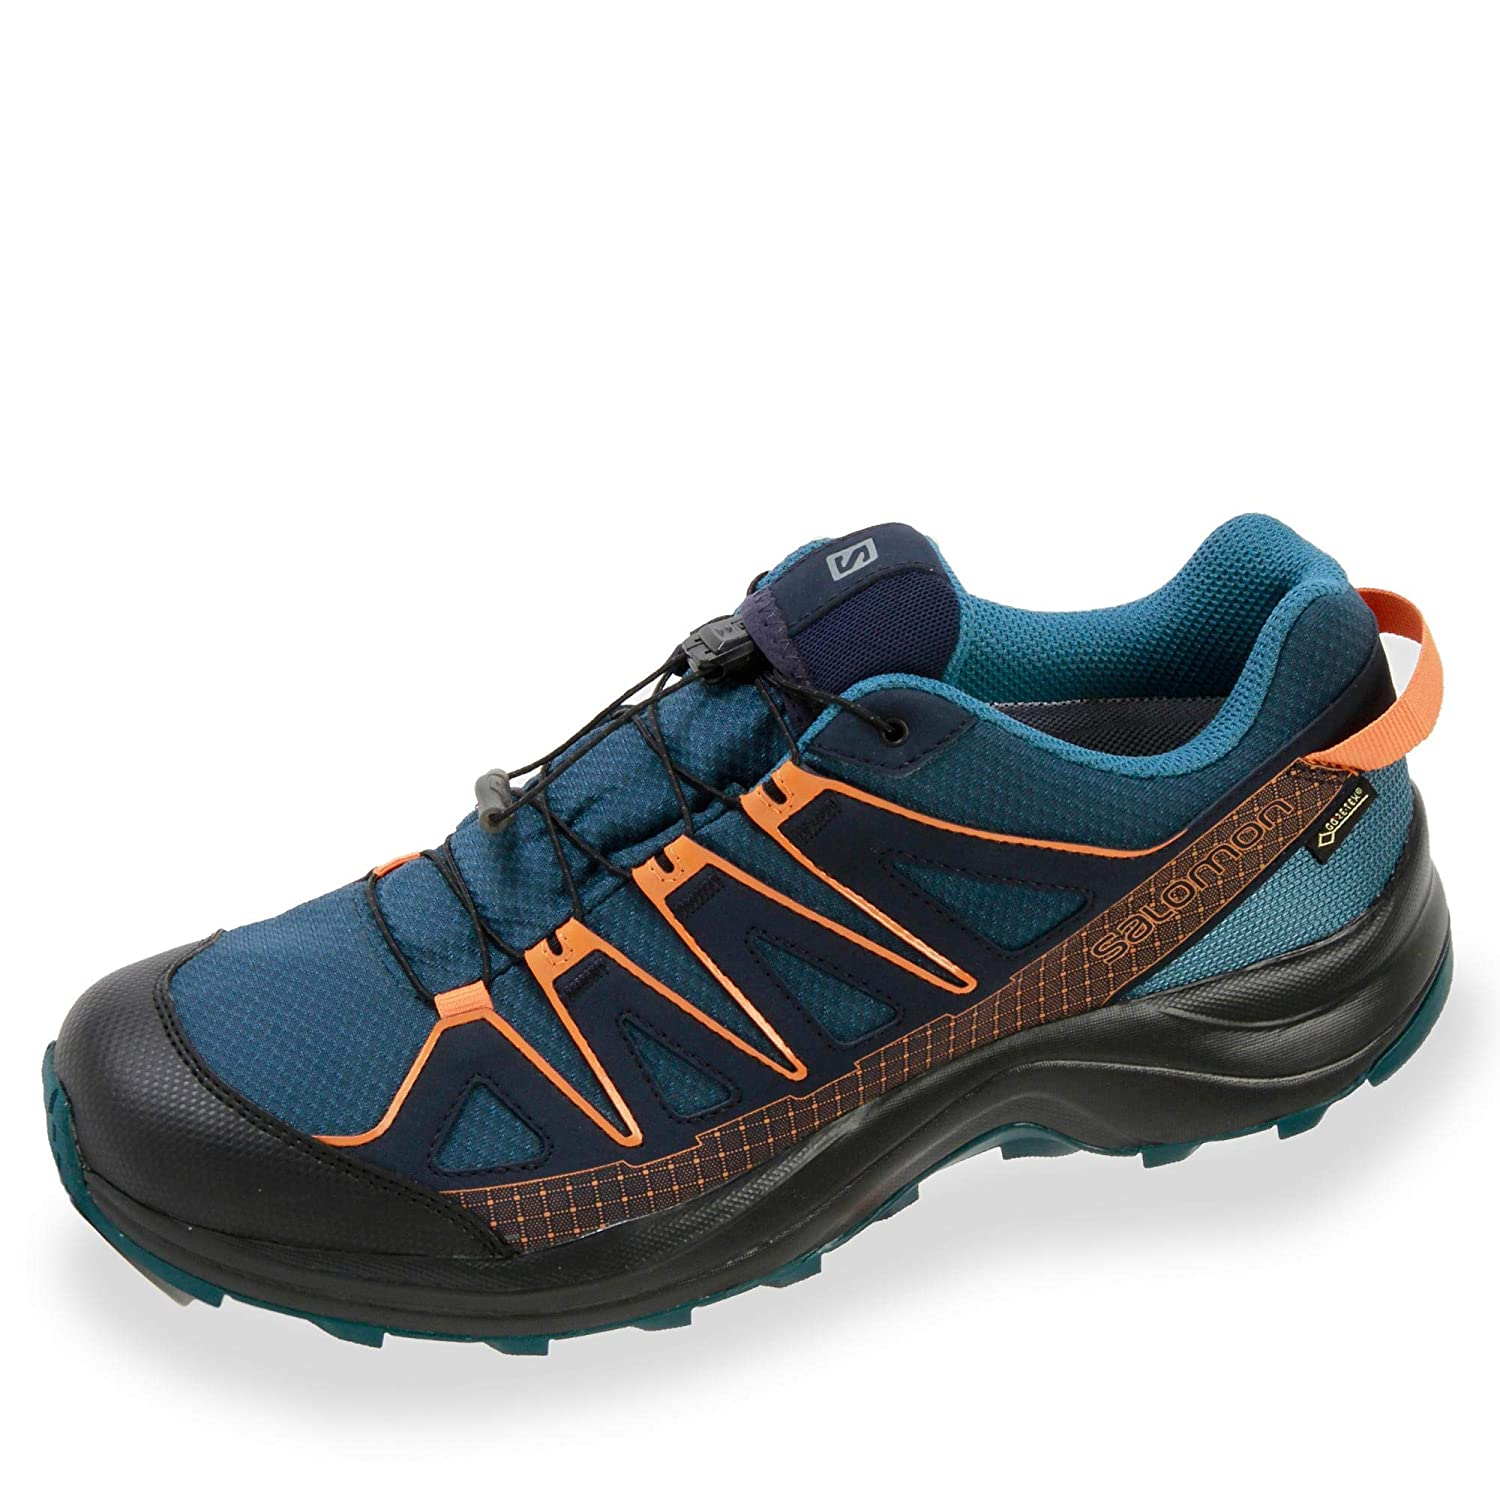 Salomon Herren Gore XA TEX® Outdoorschuh L40779500 Orion Tl3u1FKJc